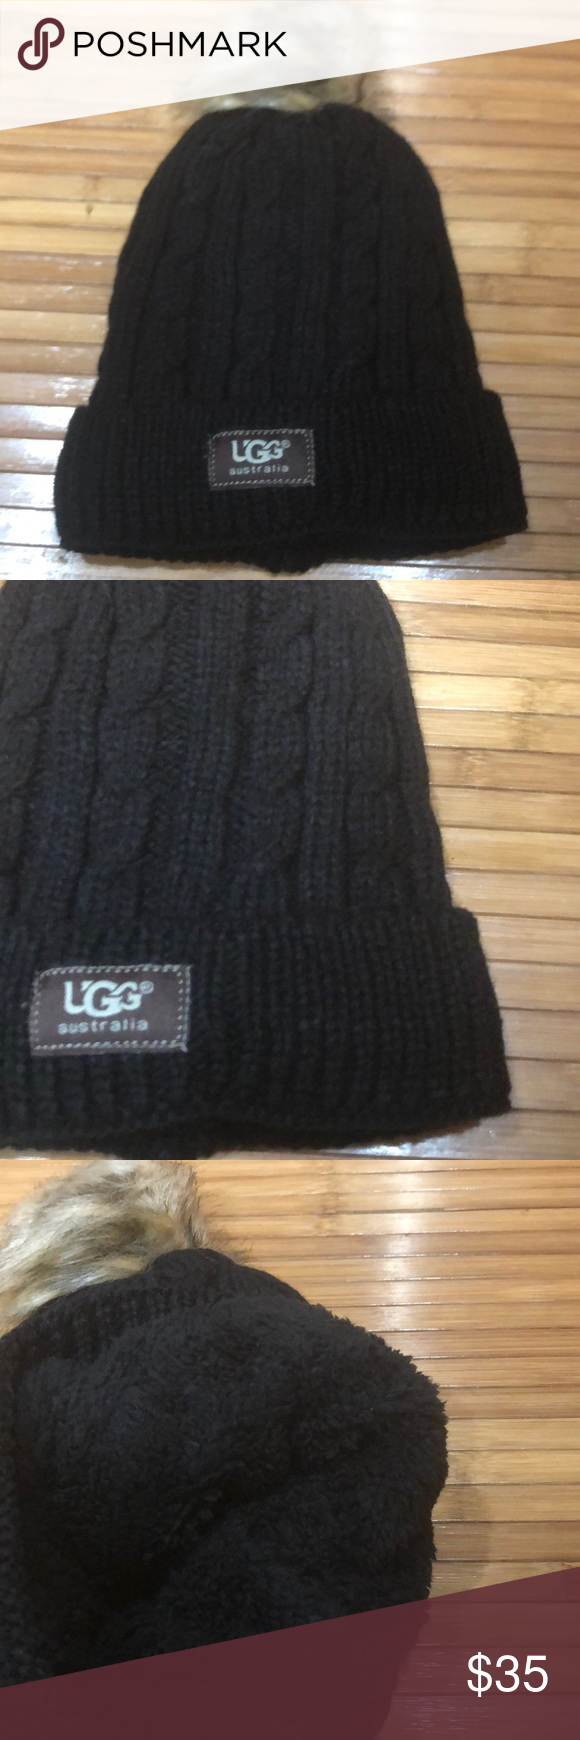 Black UGG hat. ⭐ Black hat with Pom Pom and cable stitches ... 4ac46aa49eb